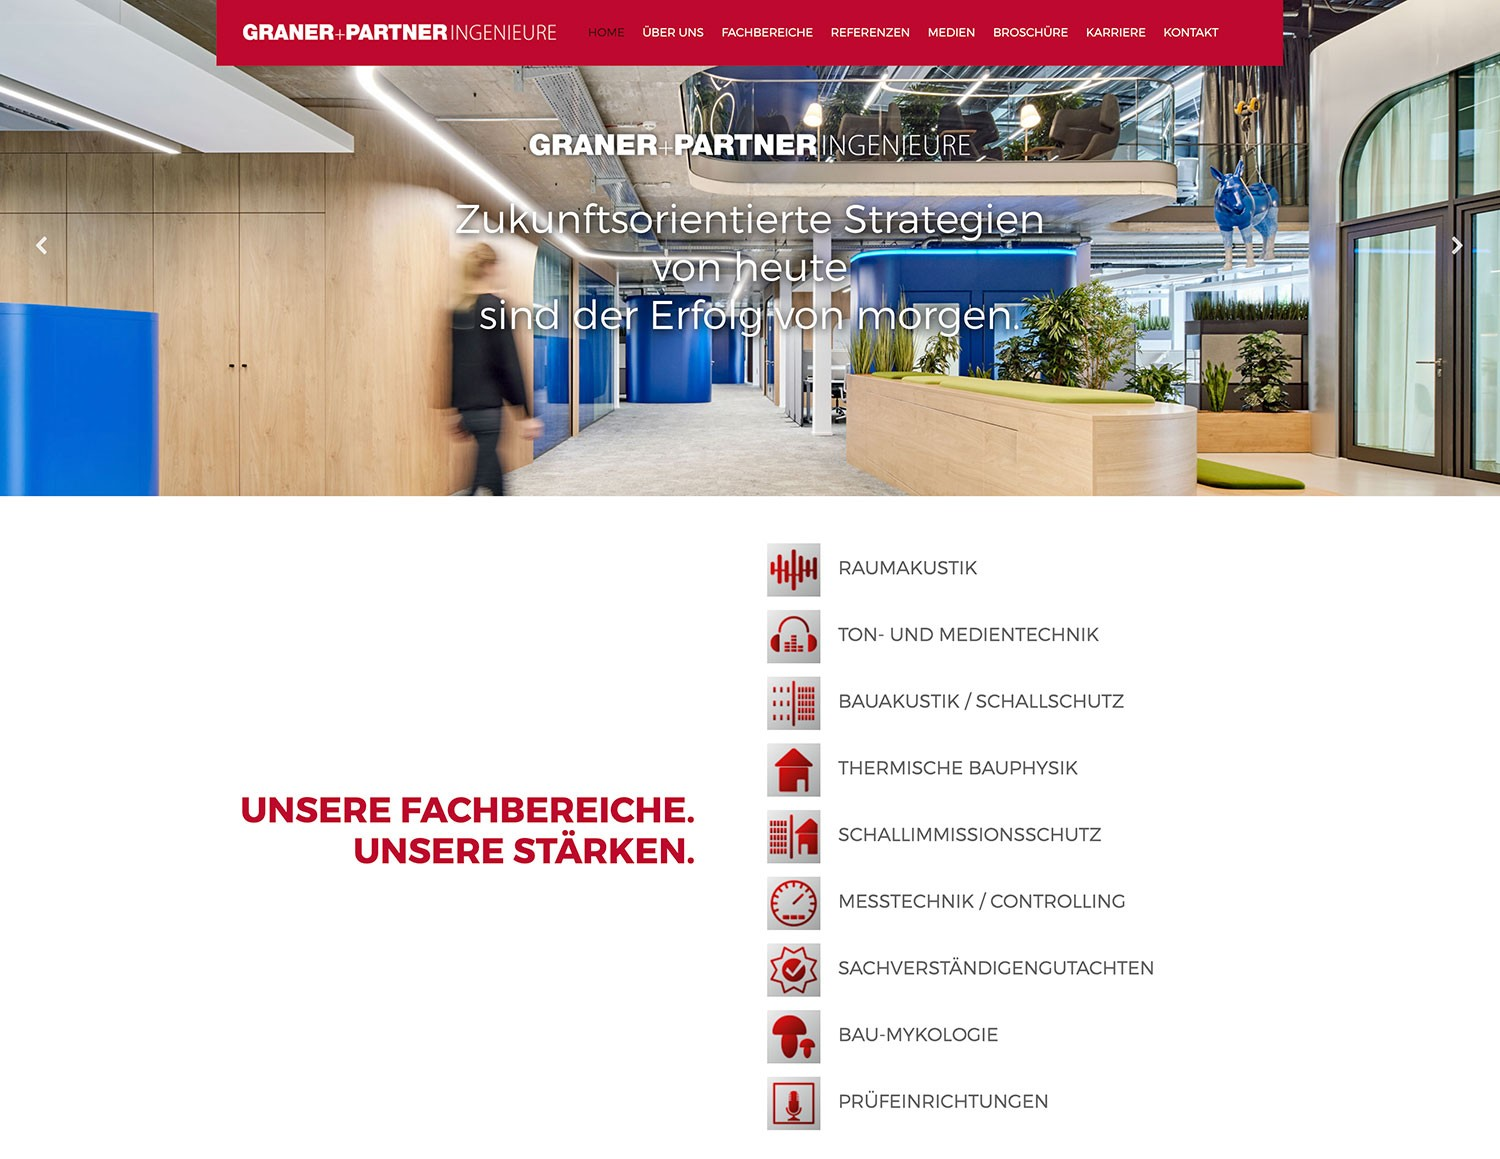 Graner + Partner Ingenieure GmbH website